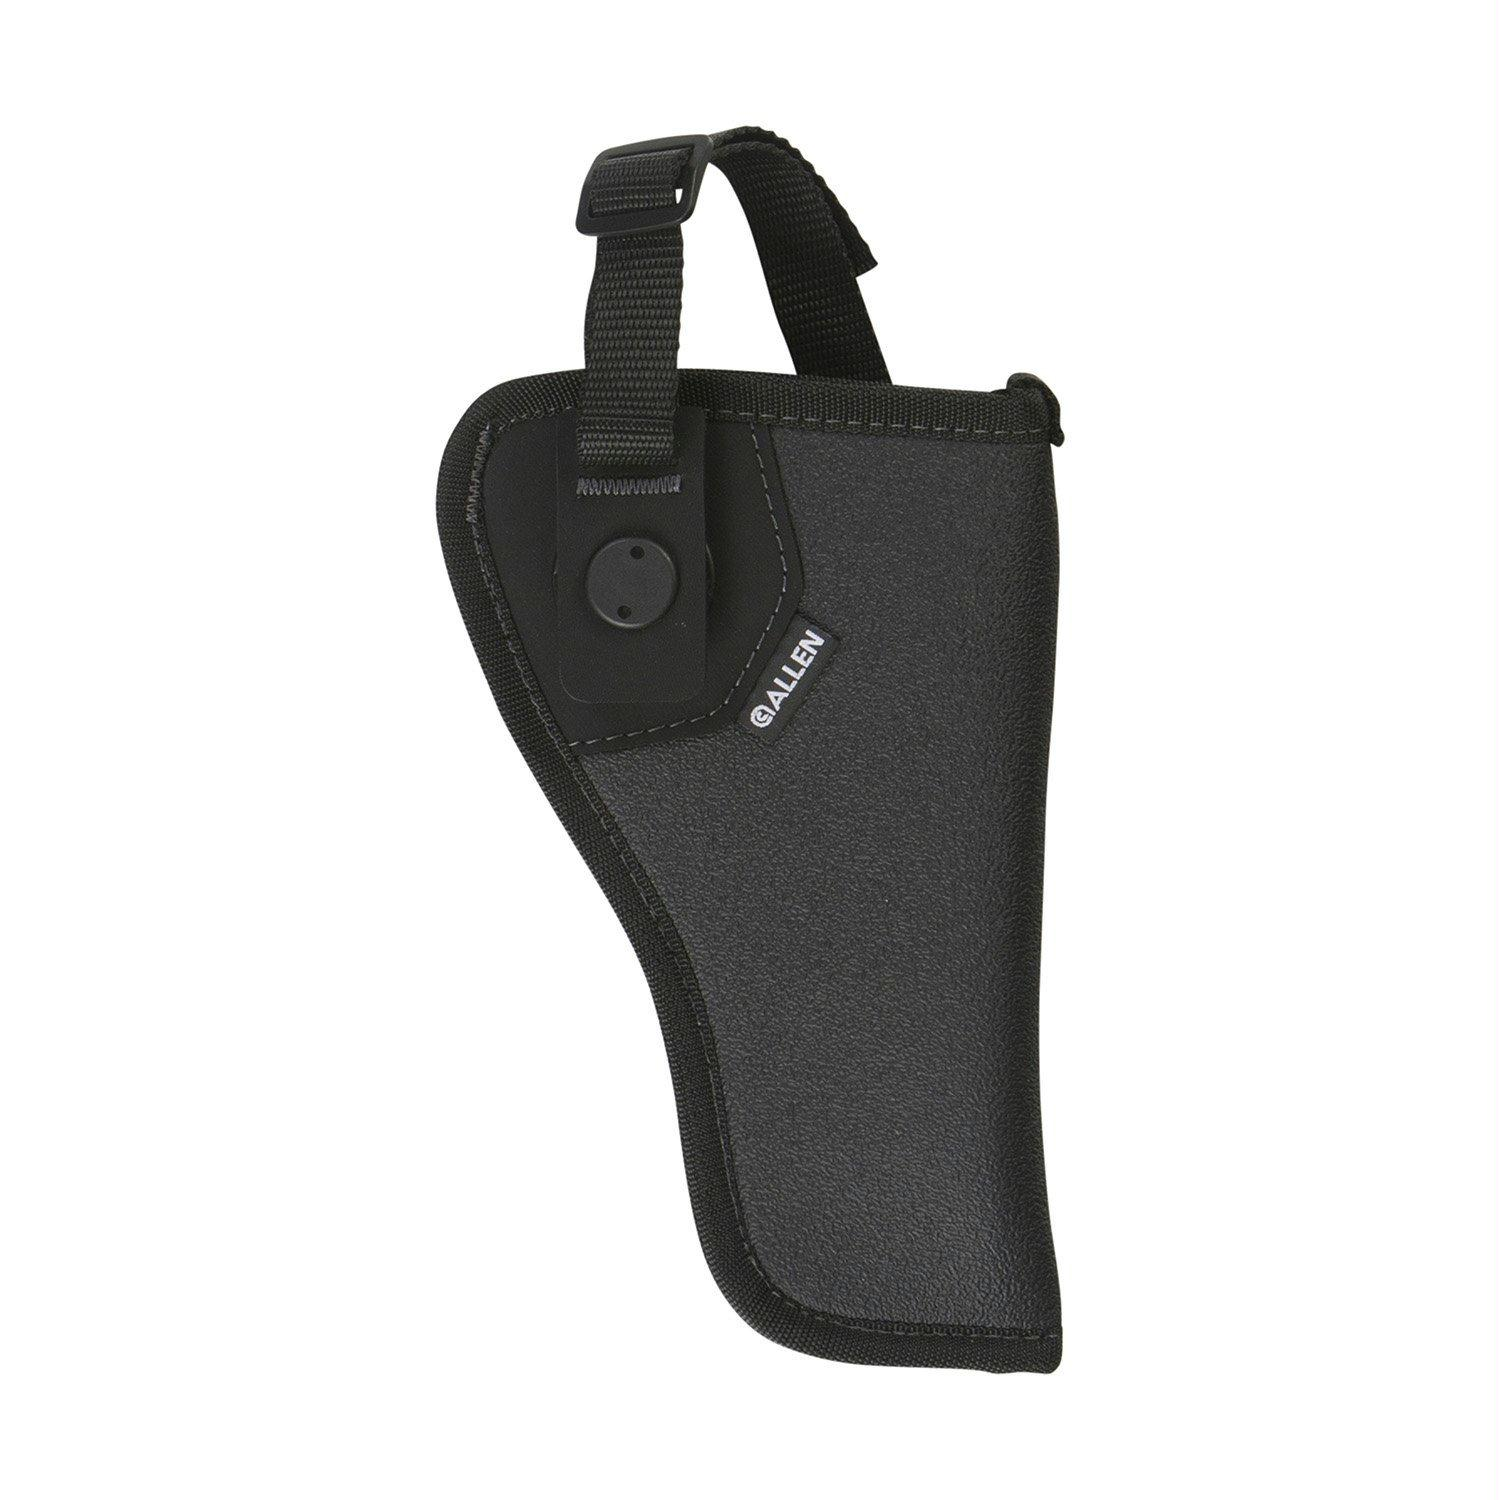 Allen Swipe Mqr Holster Sub Compact 2 5 To 3 25in Barrel